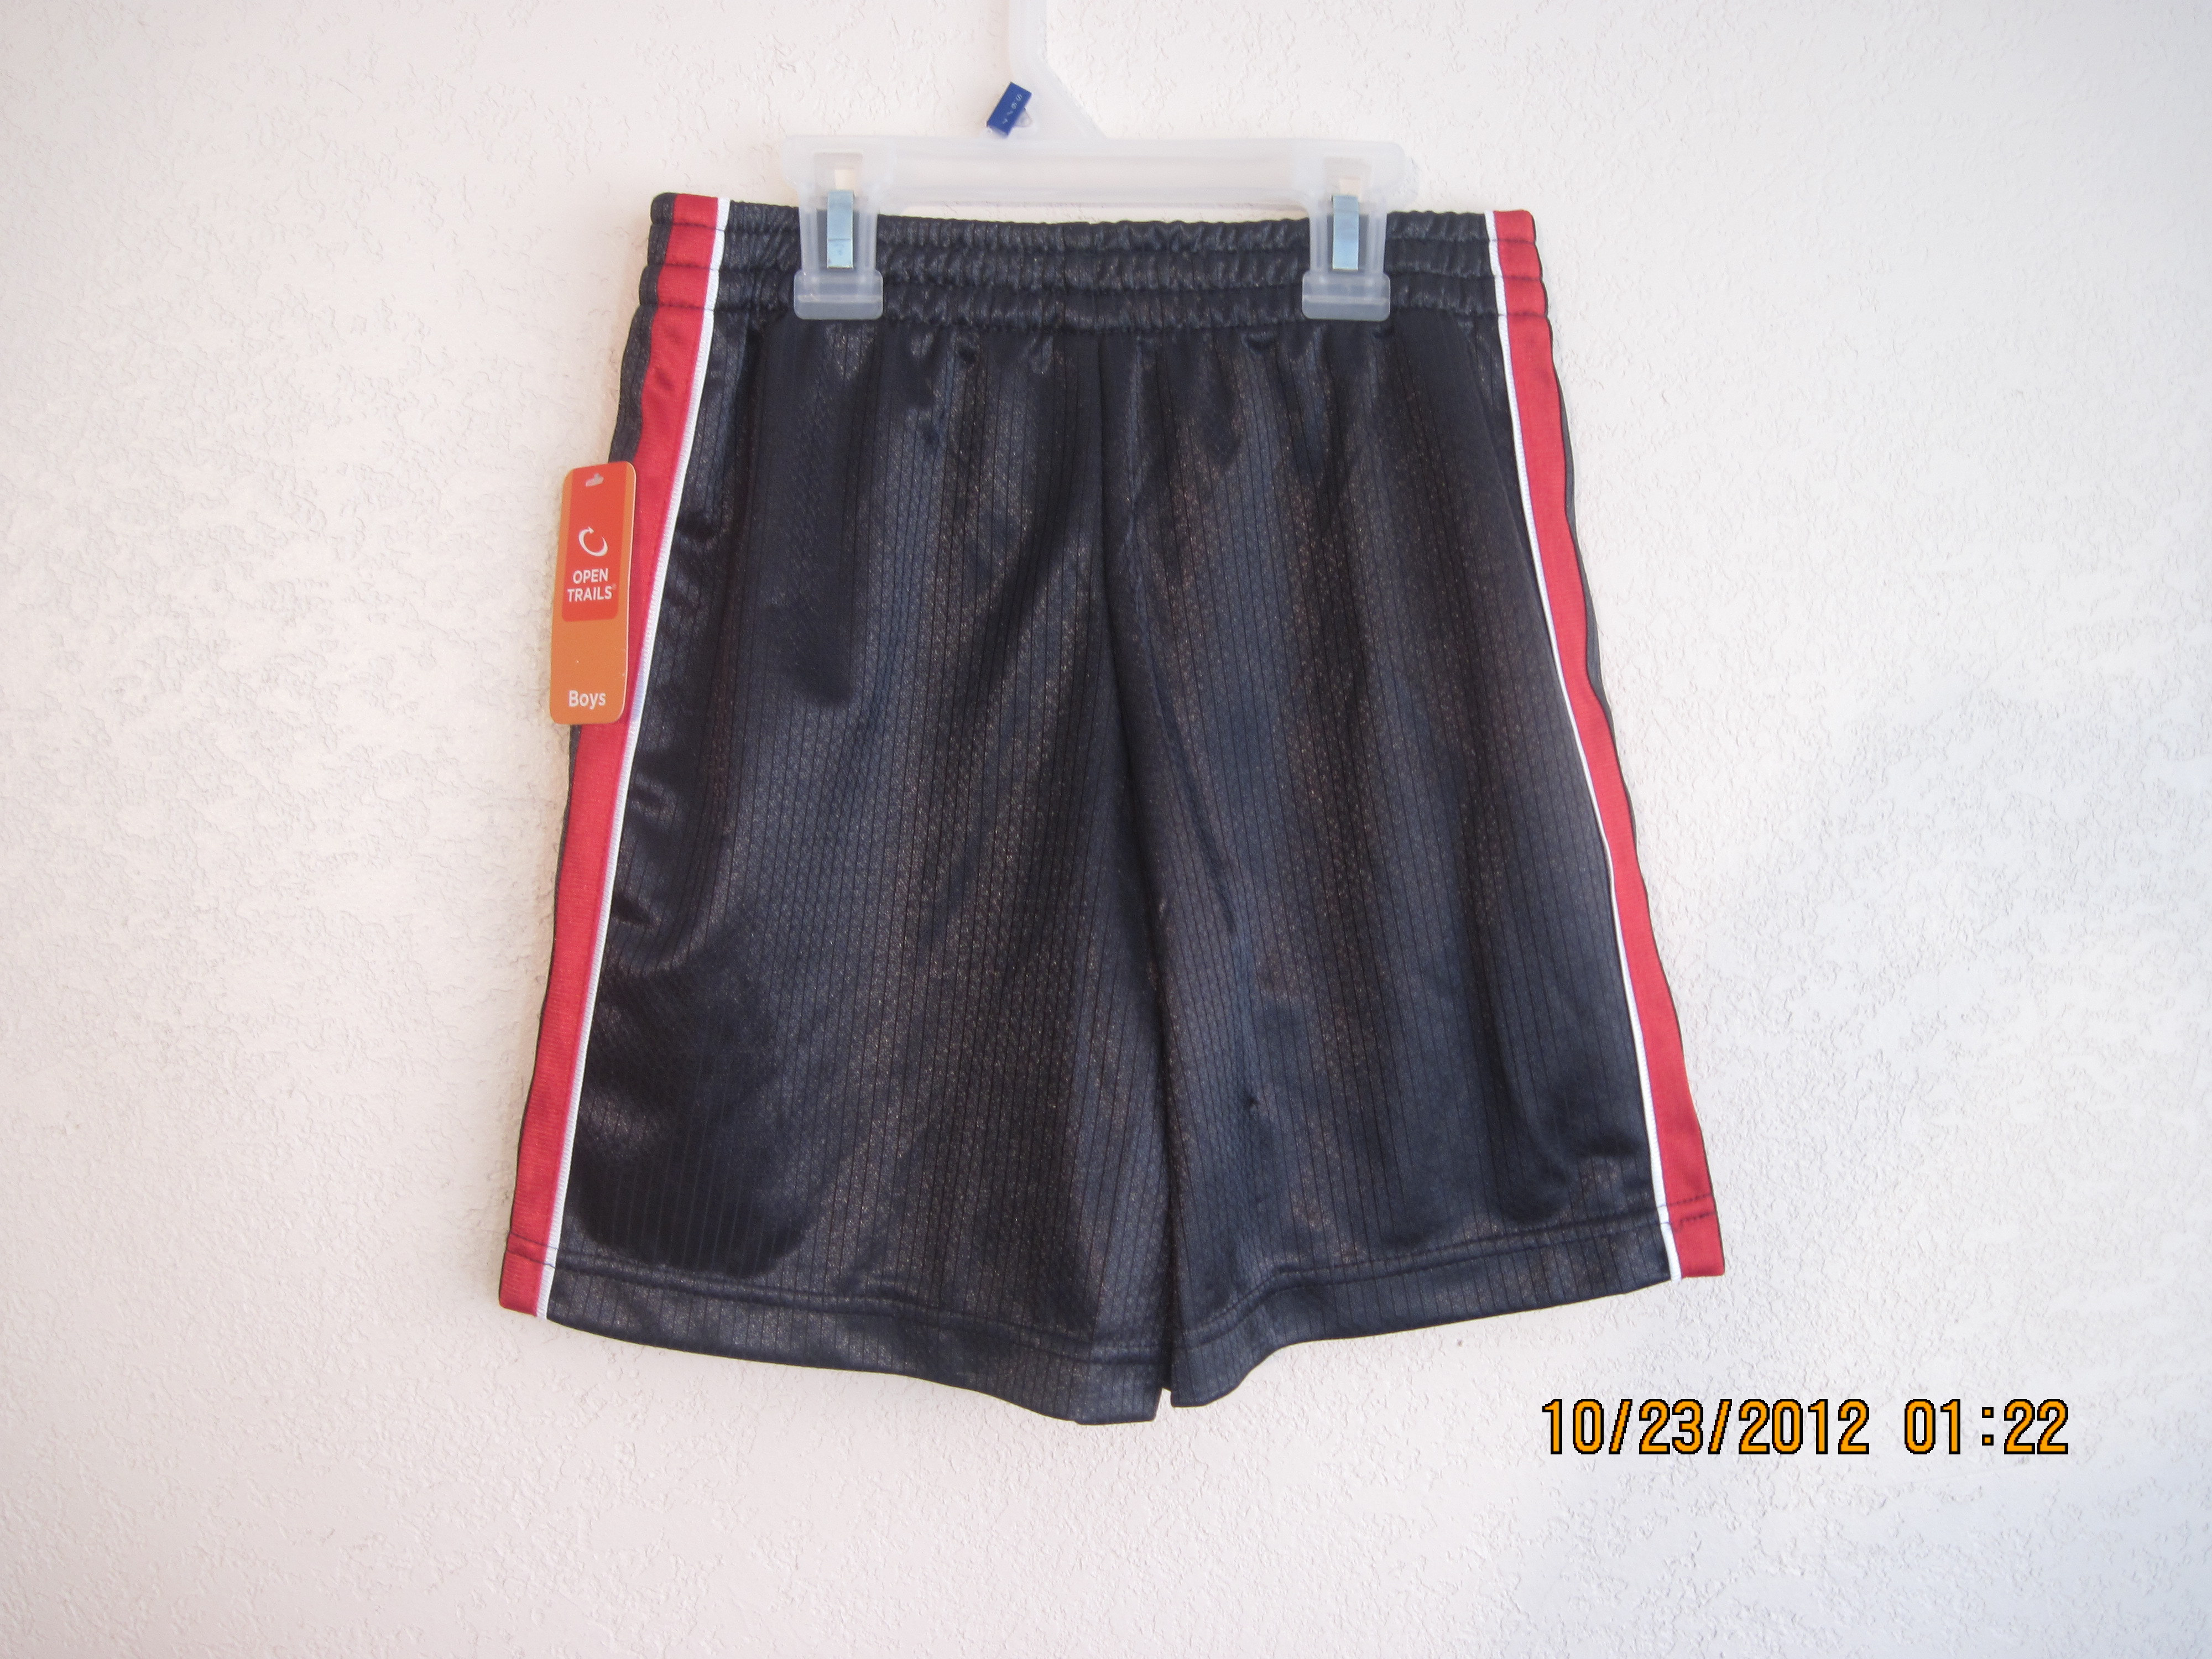 open Trails Sz S 6-7 Gray with white, Red down the side Shorts